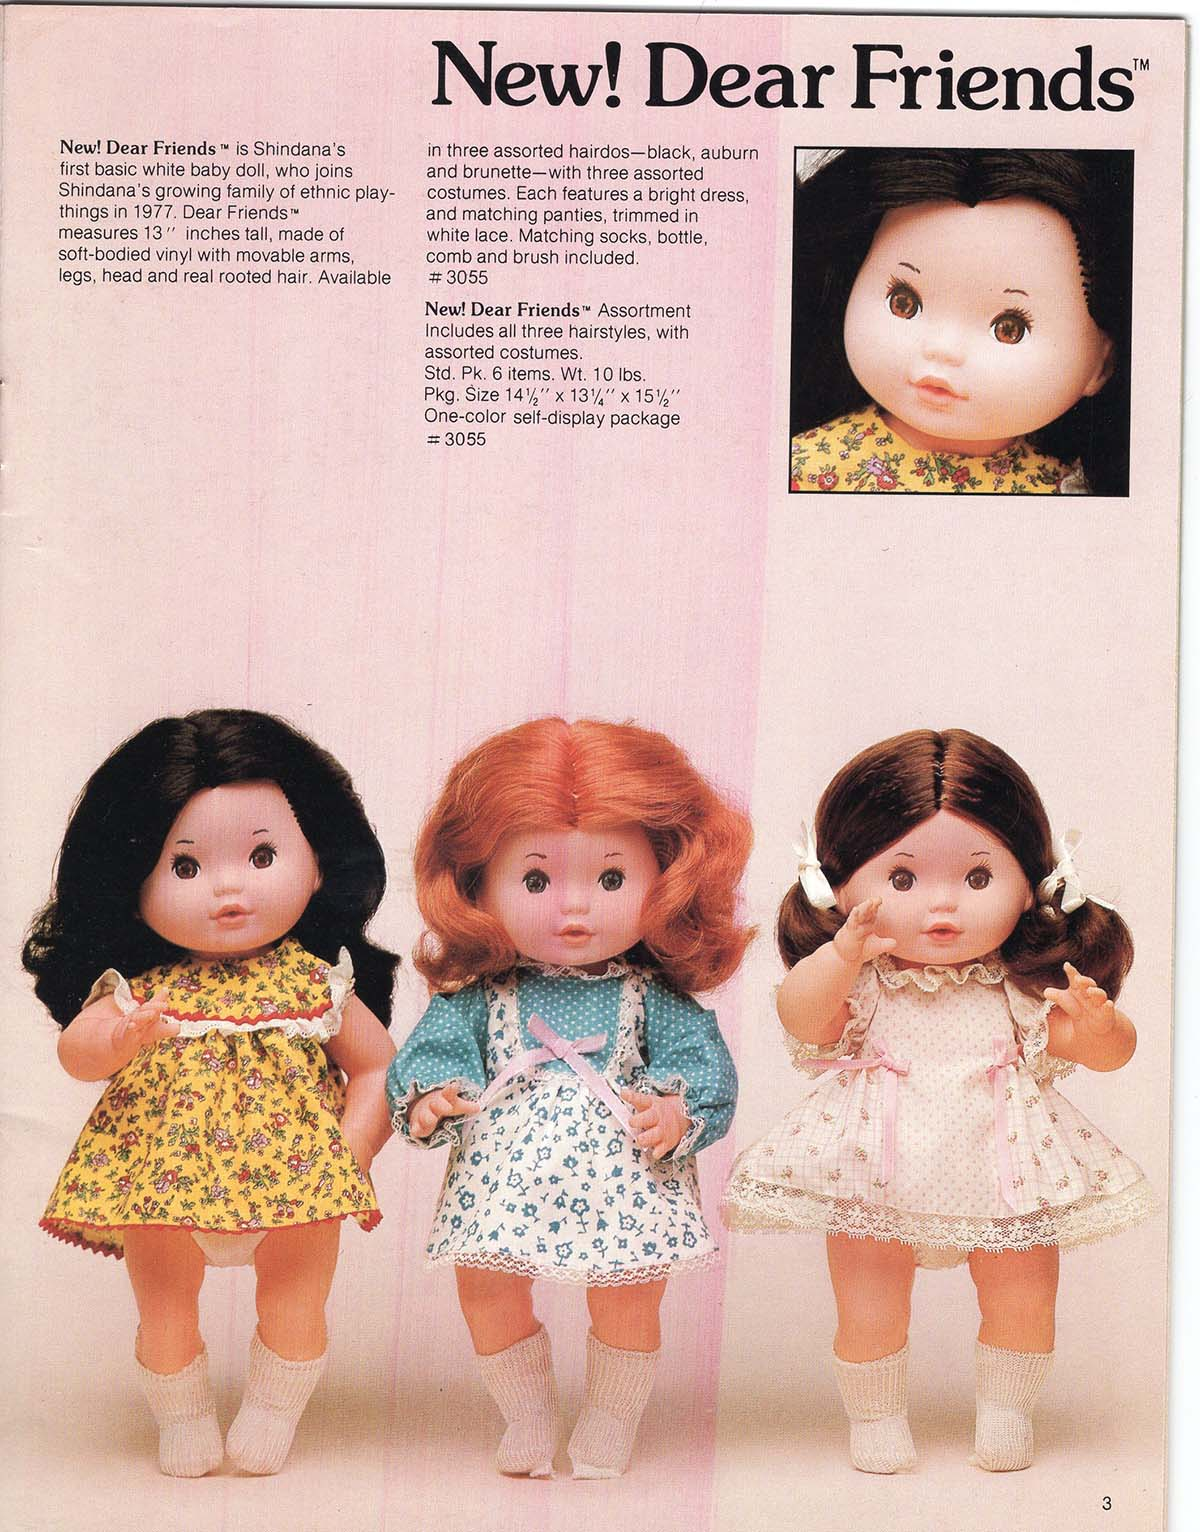 Dear Friends collection from Shindana Toys  | Courtesy of Billie Green